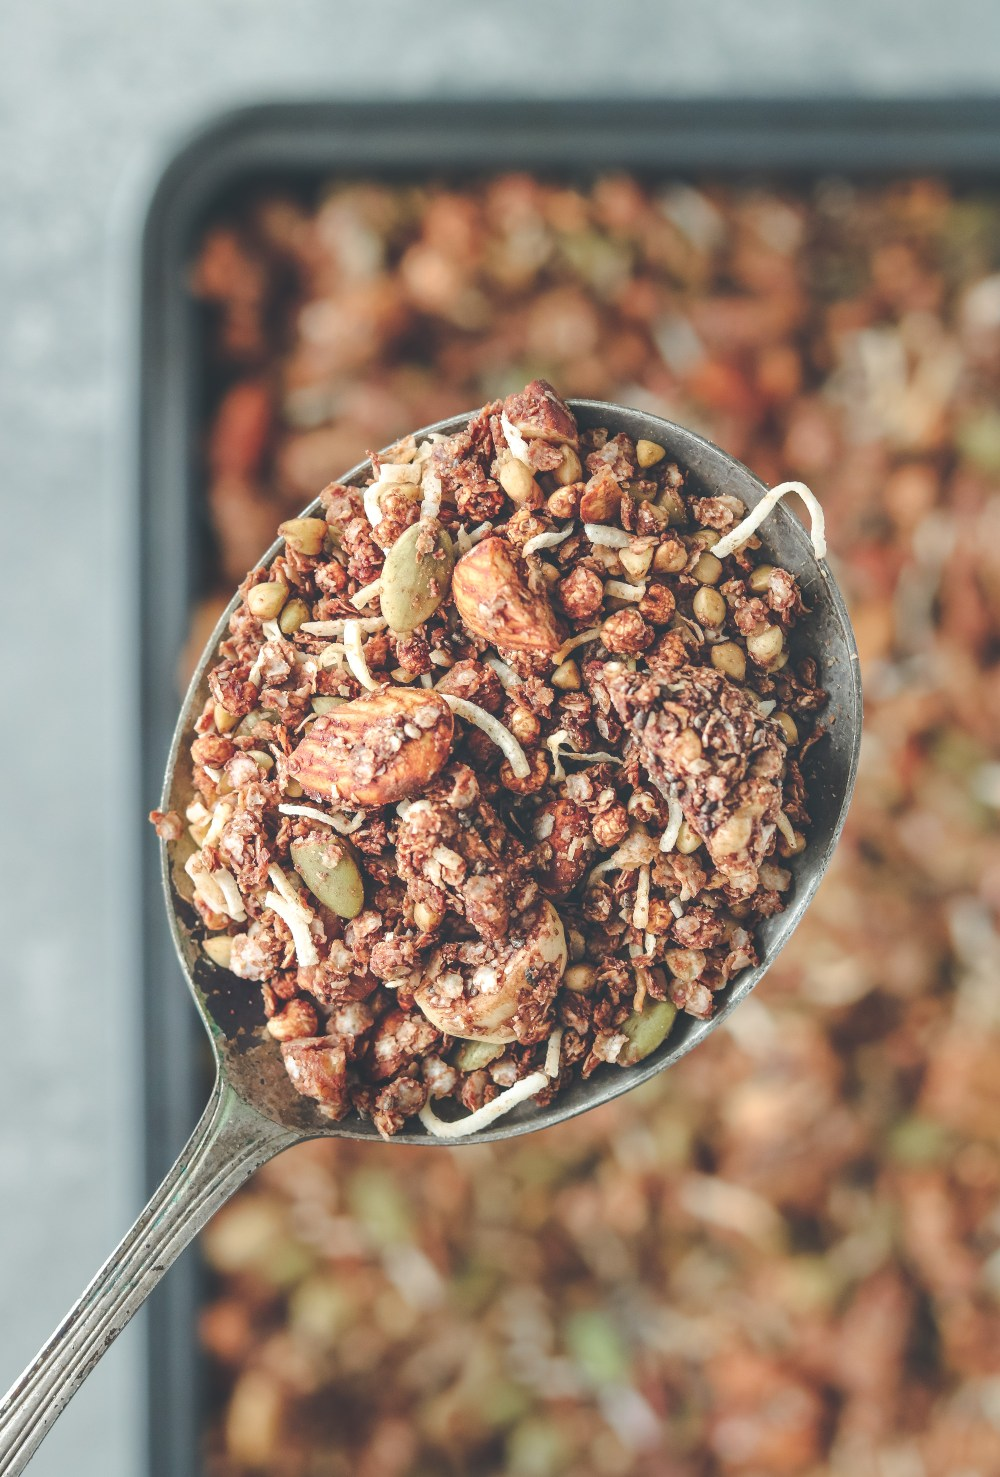 Photo: Choccy granola